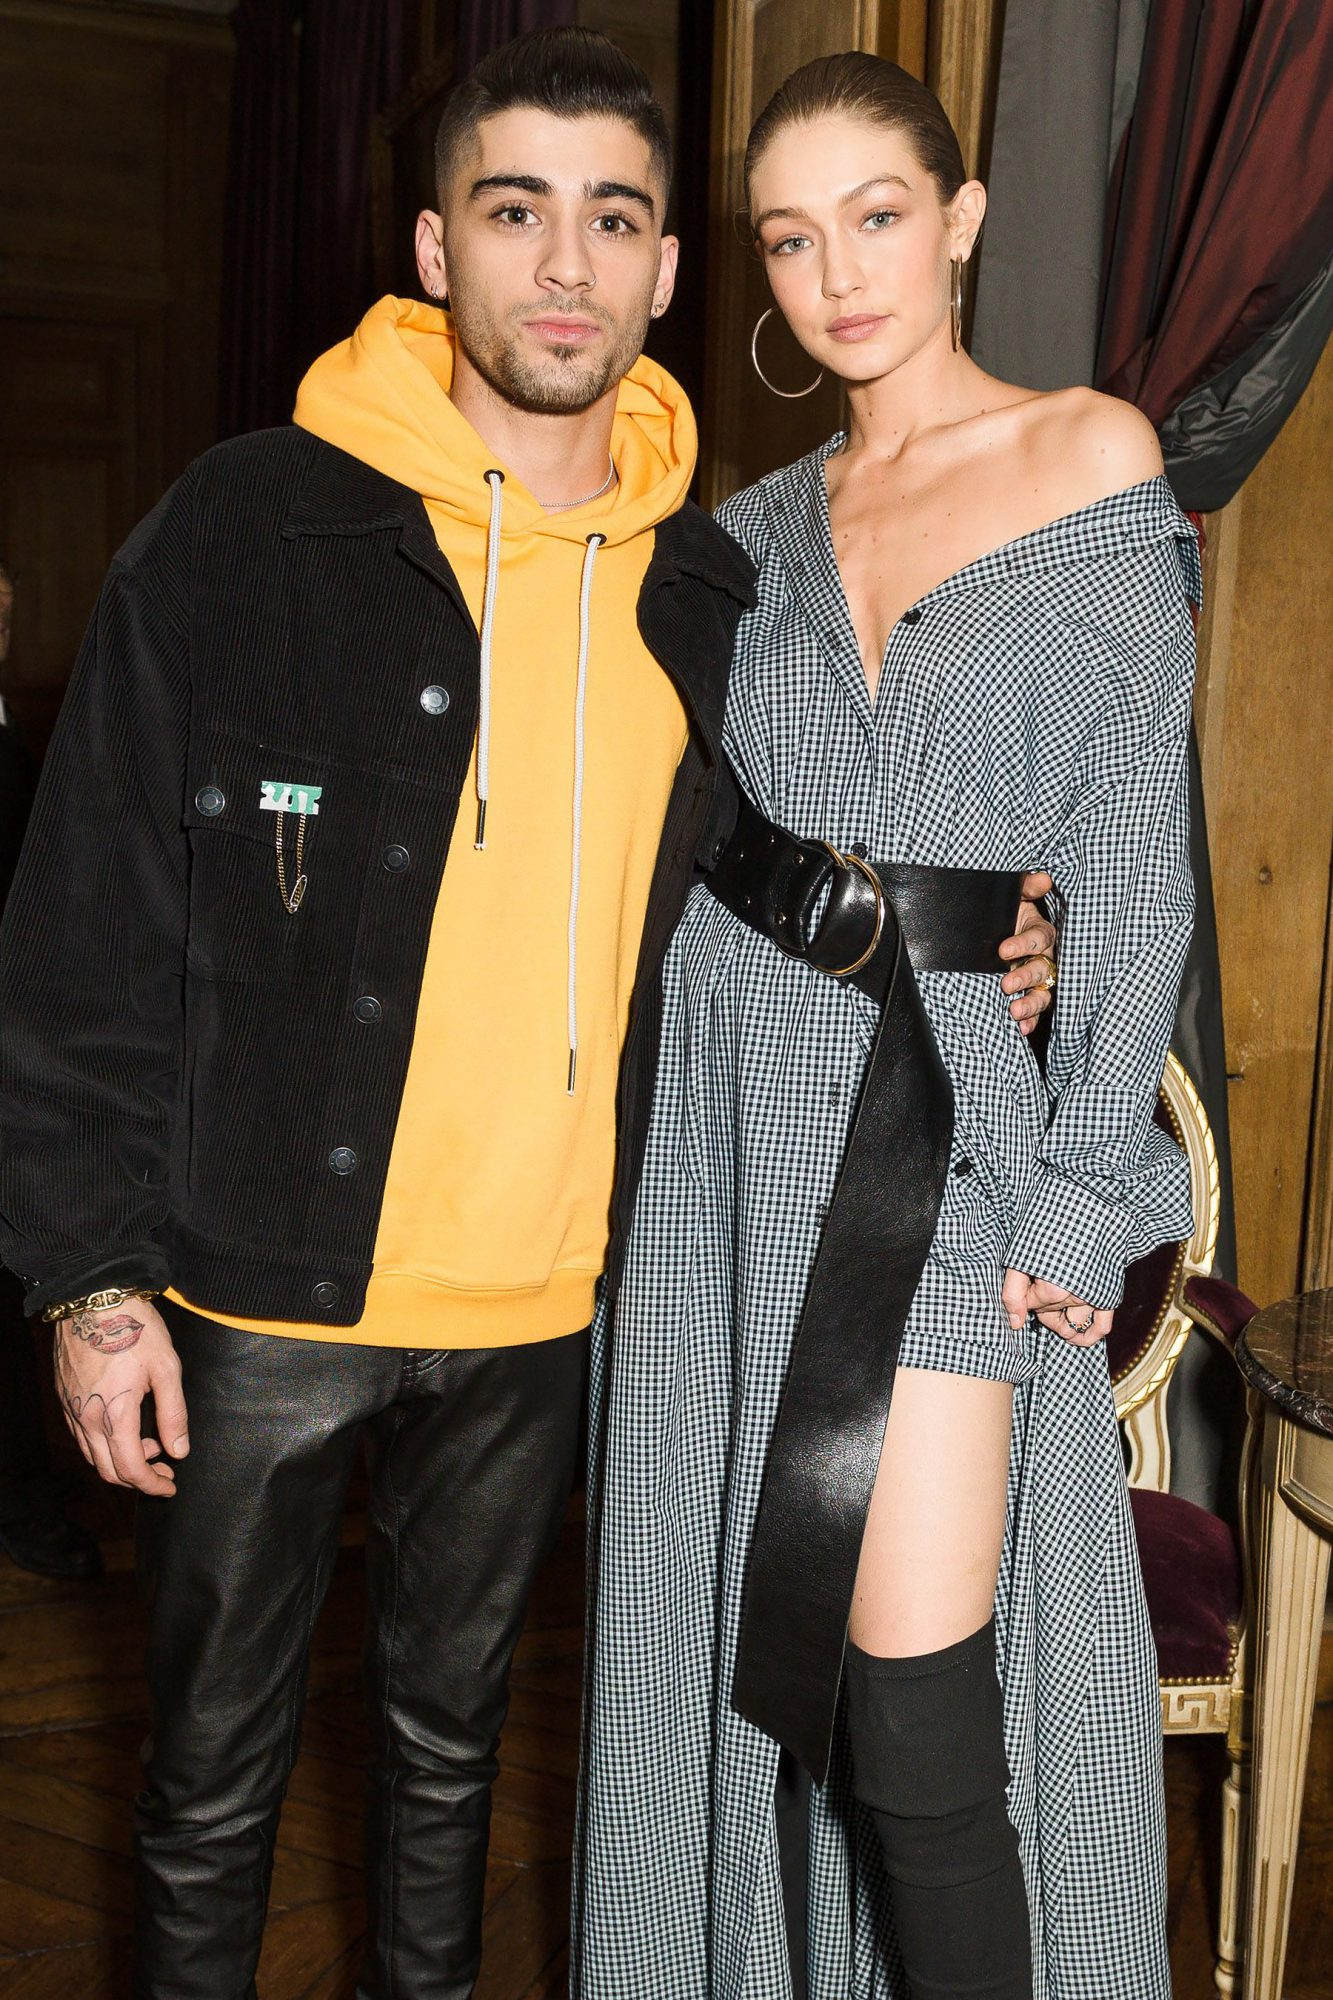 CFDA and Vogue Fashion Fund 'Americans in Paris' event, Paris, France - 03 Mar 2017